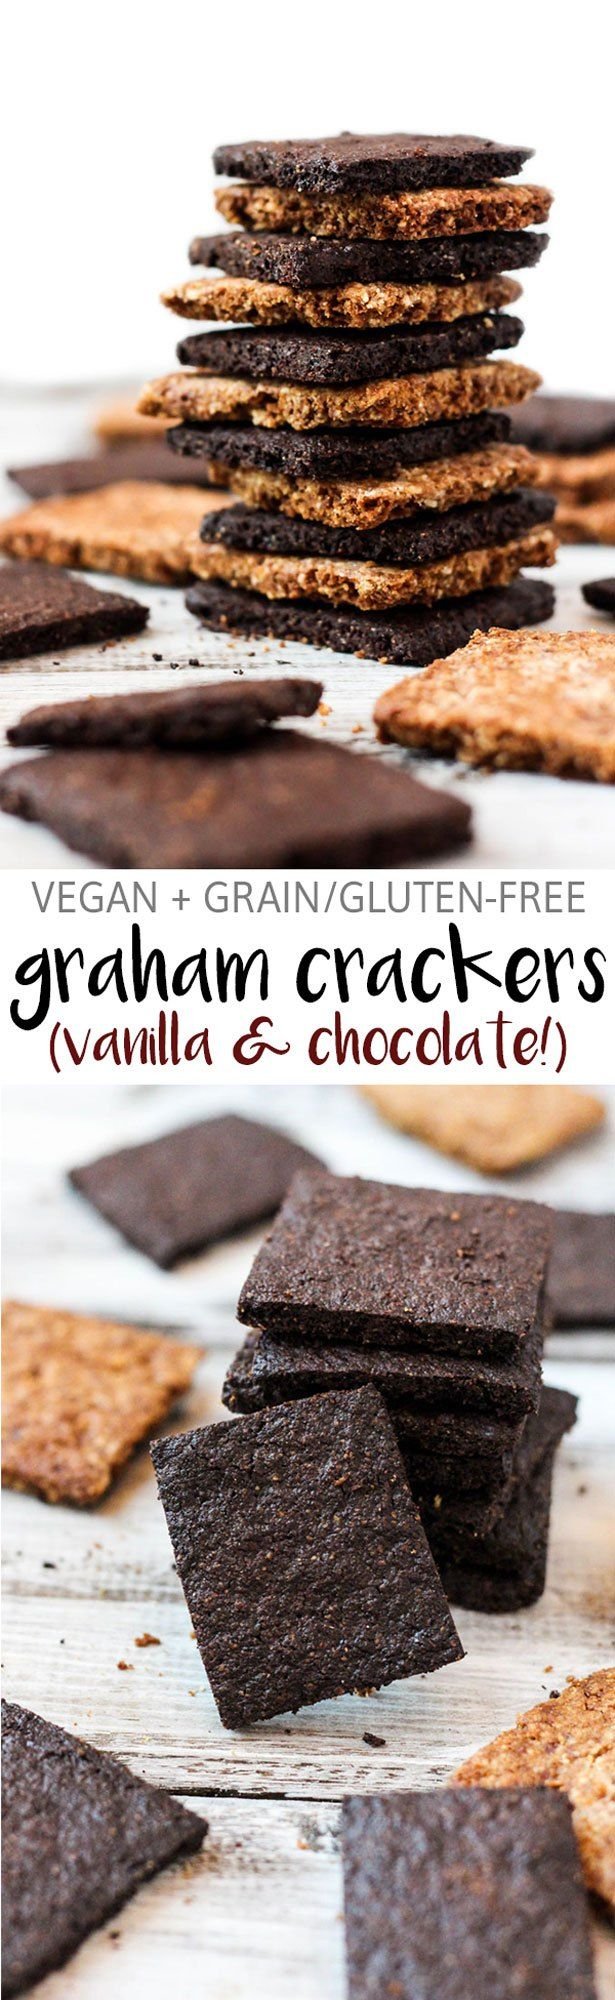 The classic snack just got a vegan & grain-free makeover! These vegan graham crackers are a great sweet snack between meals. Vanilla & chocolate recipes!